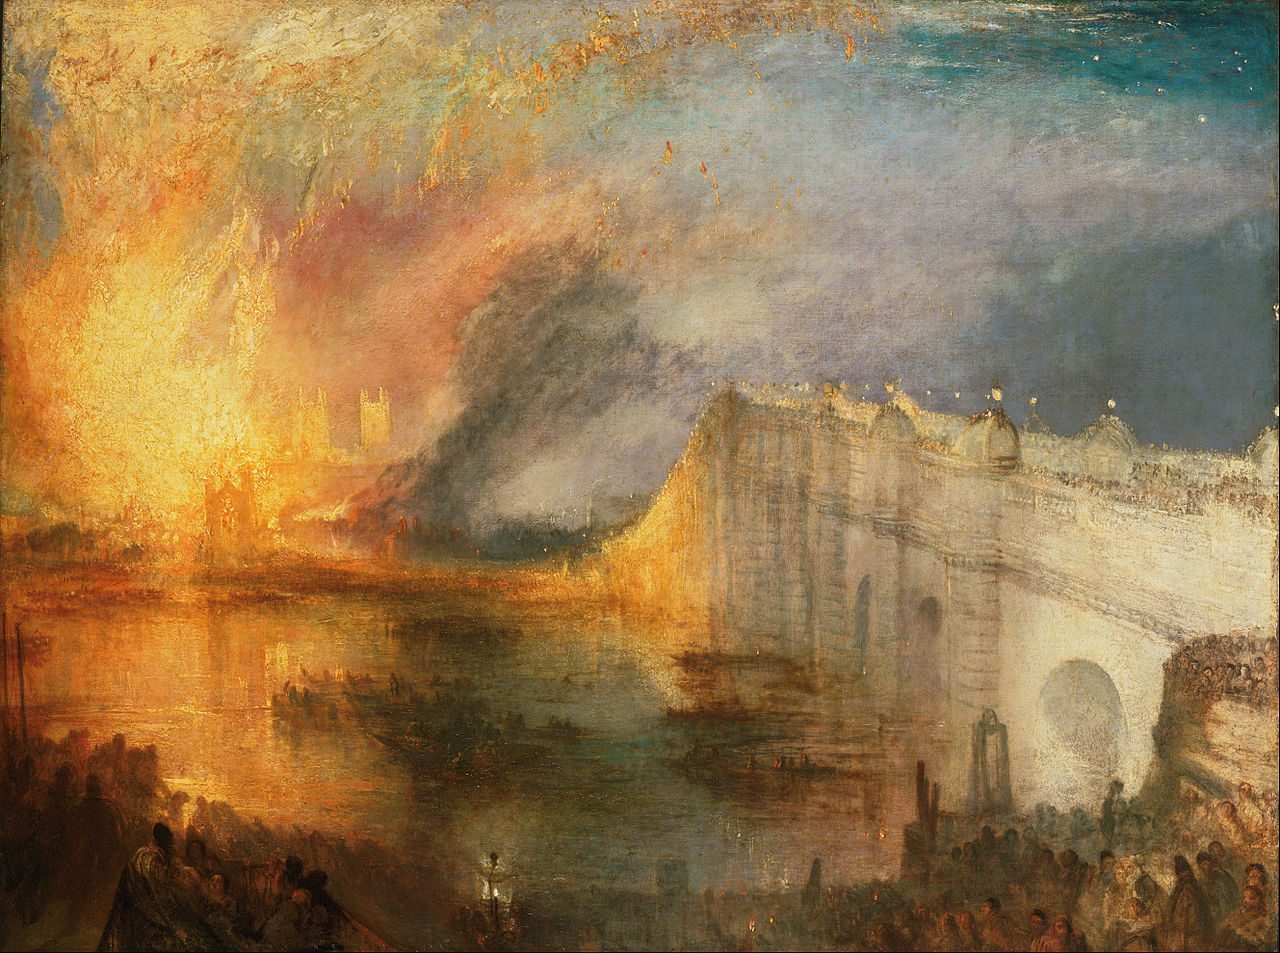 1280px-Joseph_Mallord_William_Turner, _English _-_ The_Burning_of_the_Houses_of_Lords_and_Commons, _October_16, _1834 _-_ Google_Art_Project